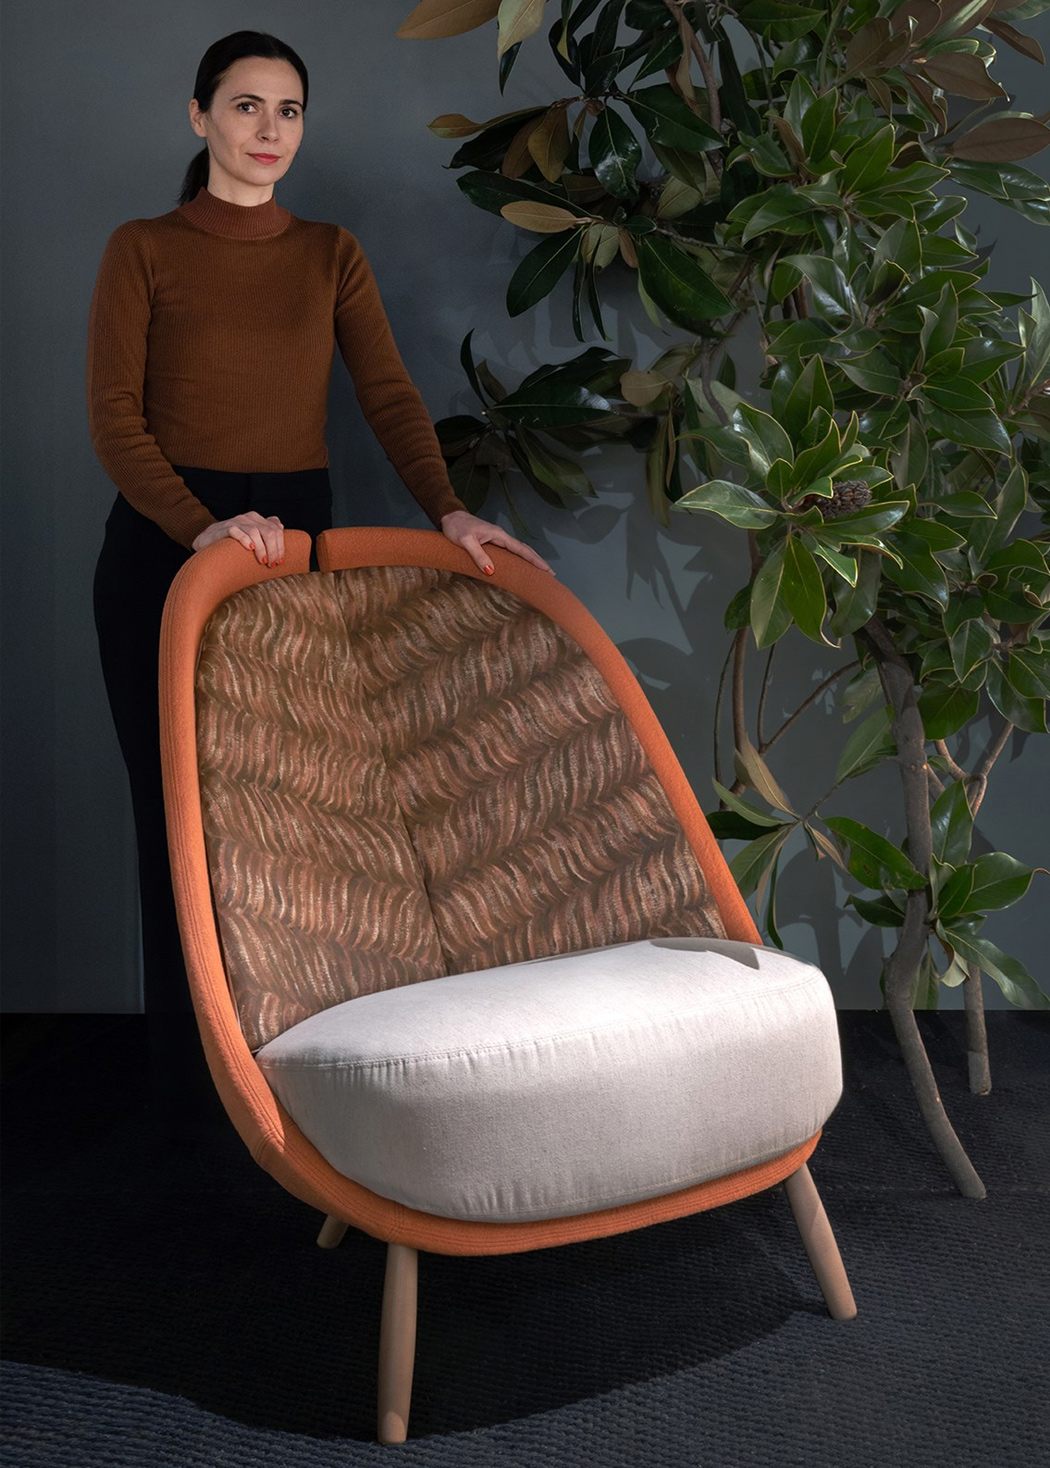 This sustainably designed chair pushes for the circular economy model in design!